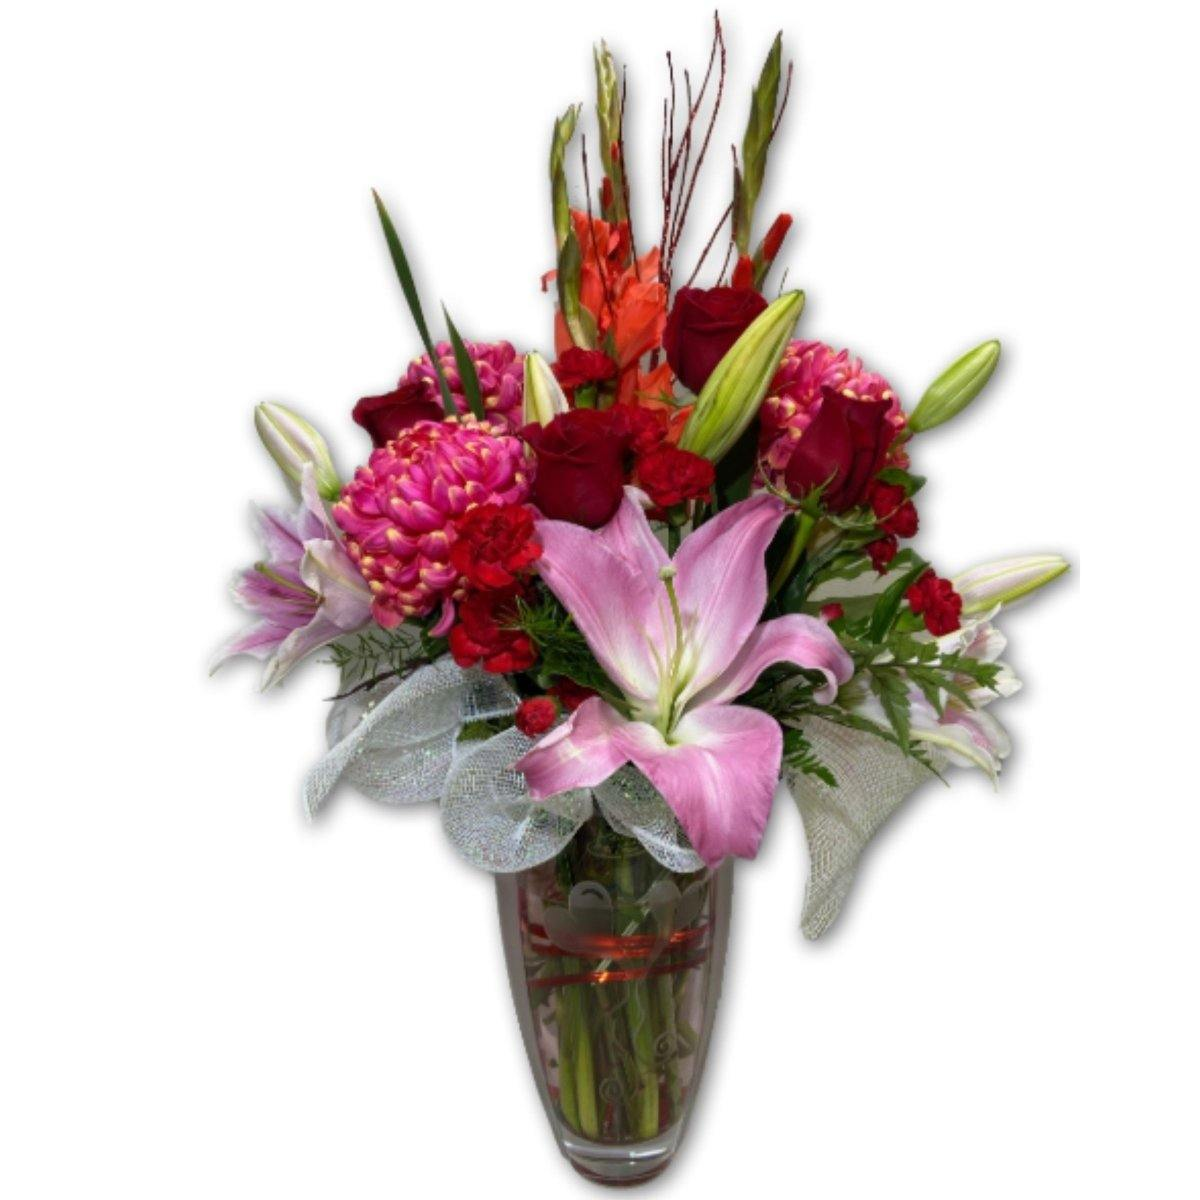 Love Burst Arrangement in Polish Vase - Shalimar Flower Shop